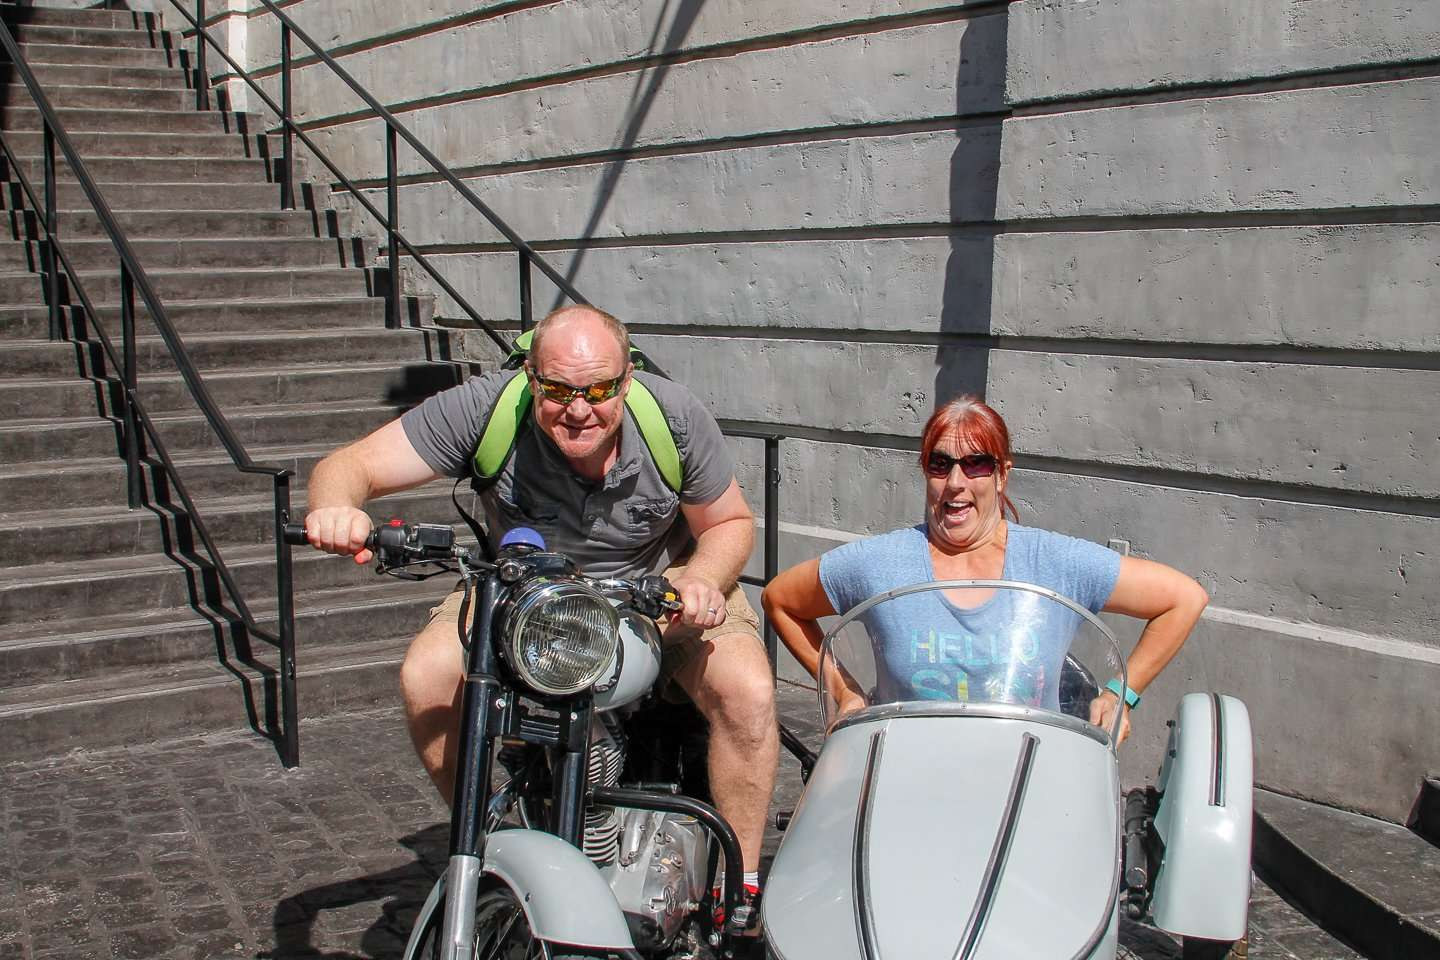 Wizarding World of Harry Potter Photo op with motor bike